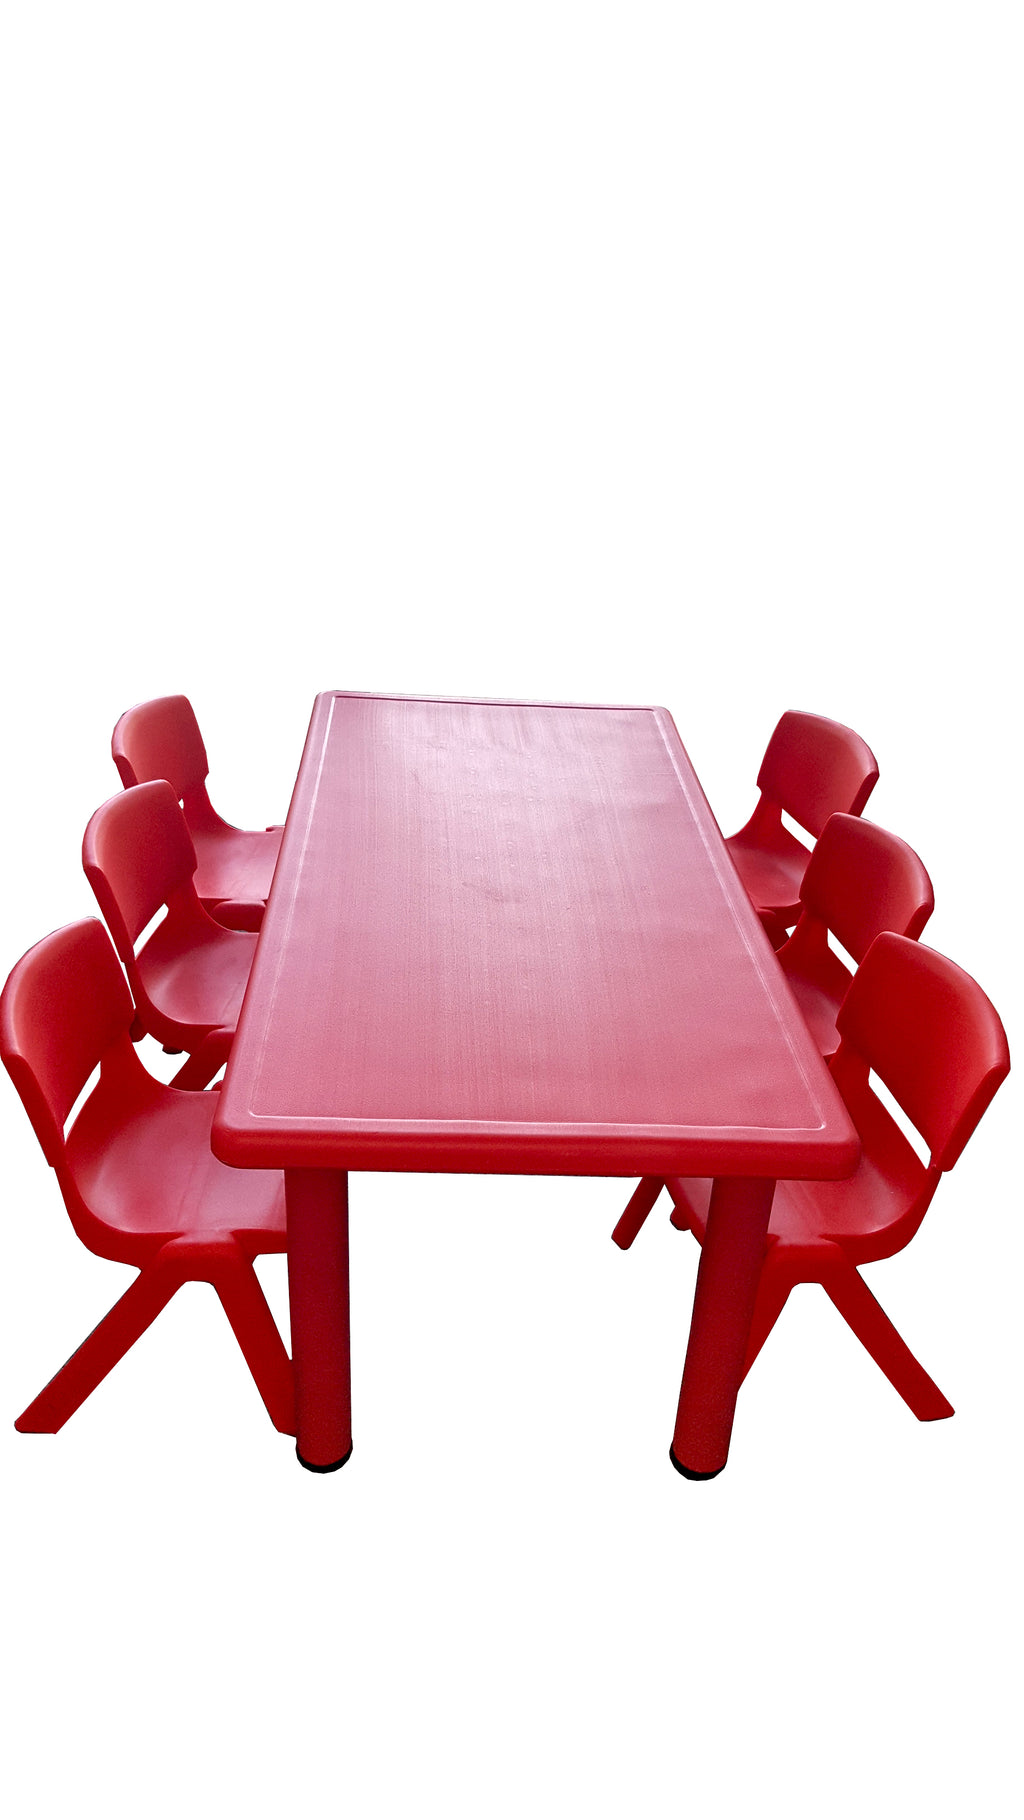 LARGE CHILDREN TODDLER KIDS ADJUSTABLE RED TABLE AND 6 RED CHAIRS 120cmX60cm